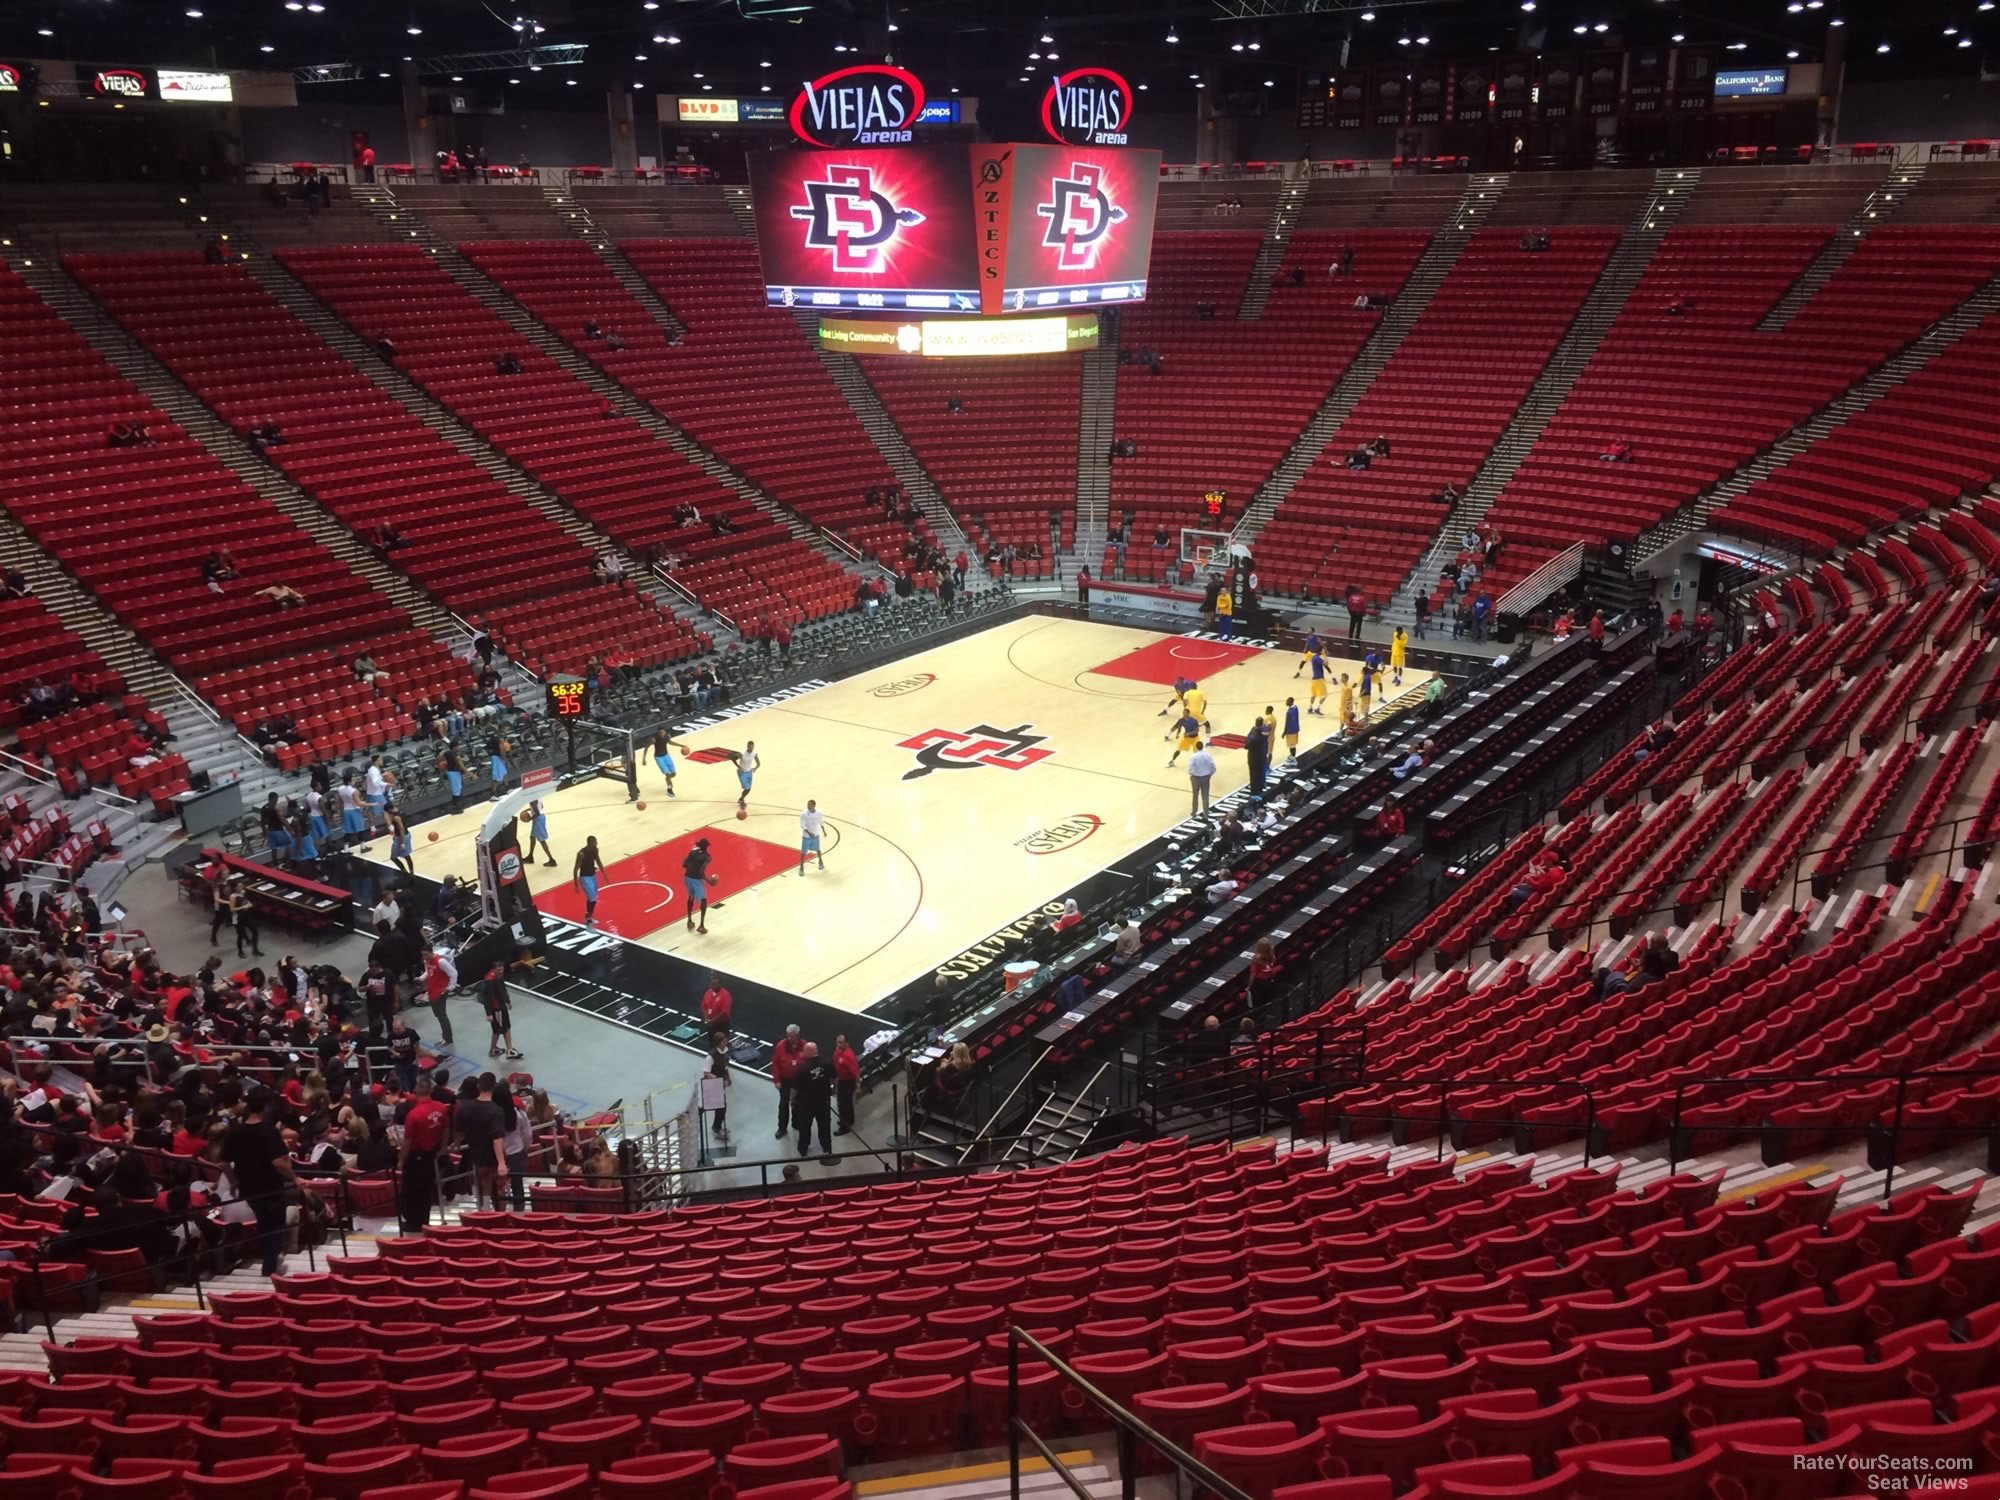 Section N seat view